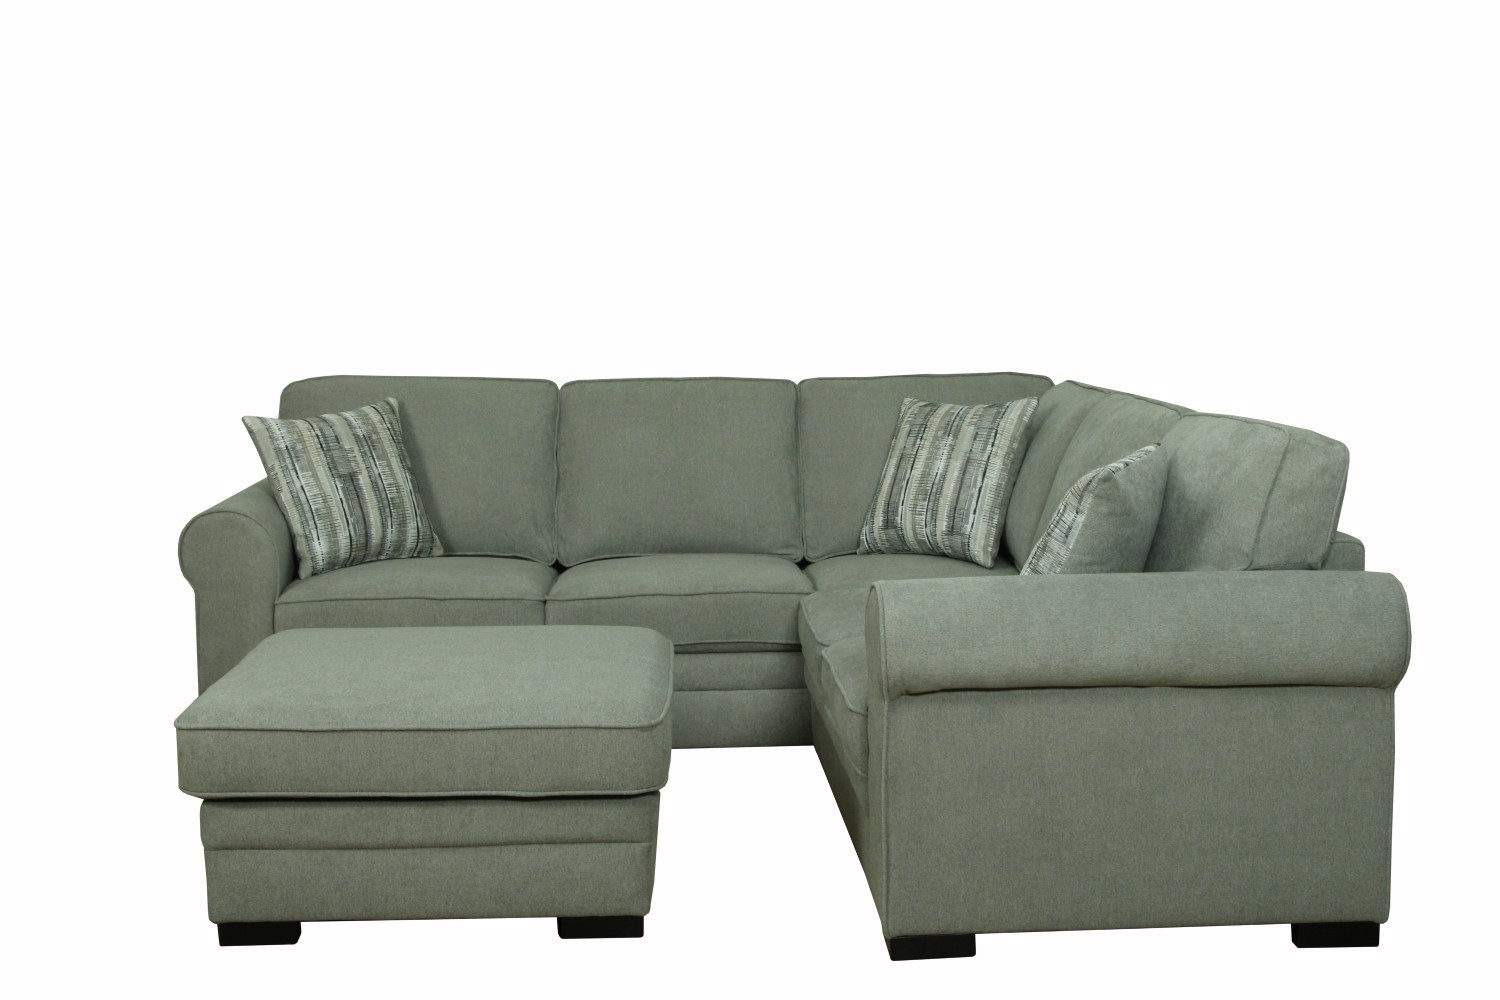 Abigail Right Facing Tux Sleeper Sectional | New Year's Sale On 500+ Inside Abigail Ii Sofa Chairs (View 10 of 25)